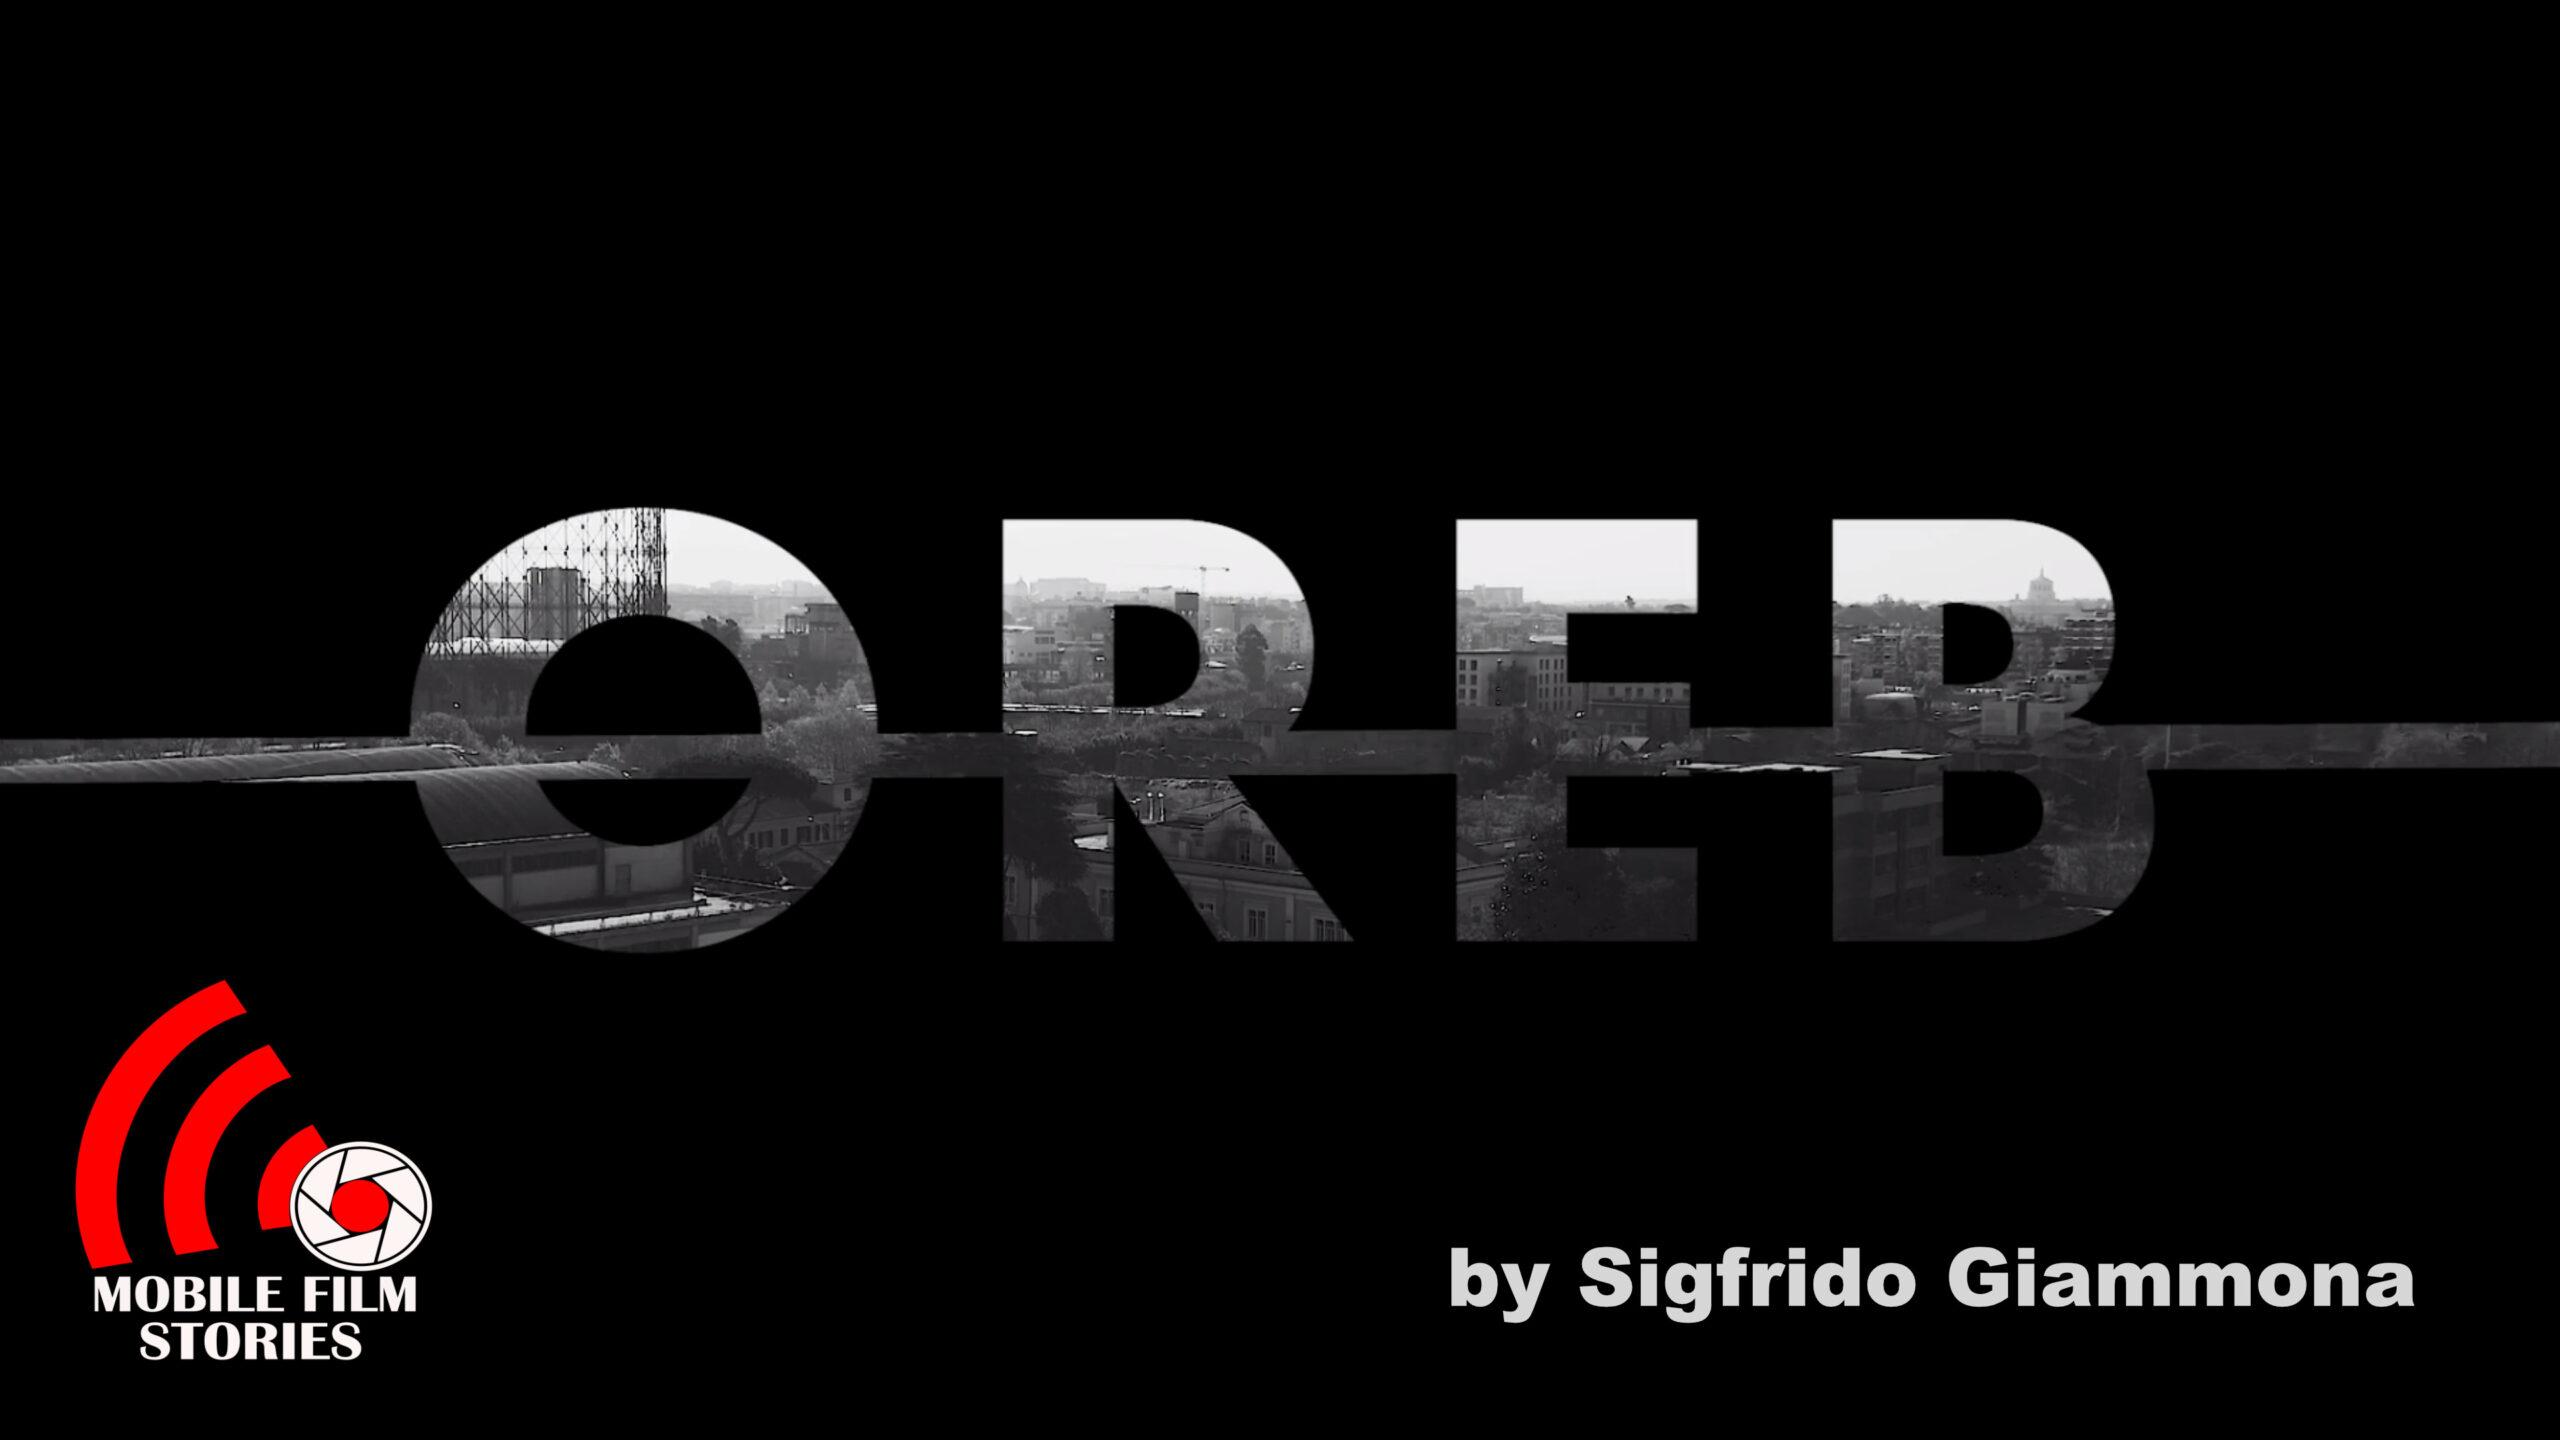 OREB film by Sigfrido Giammona